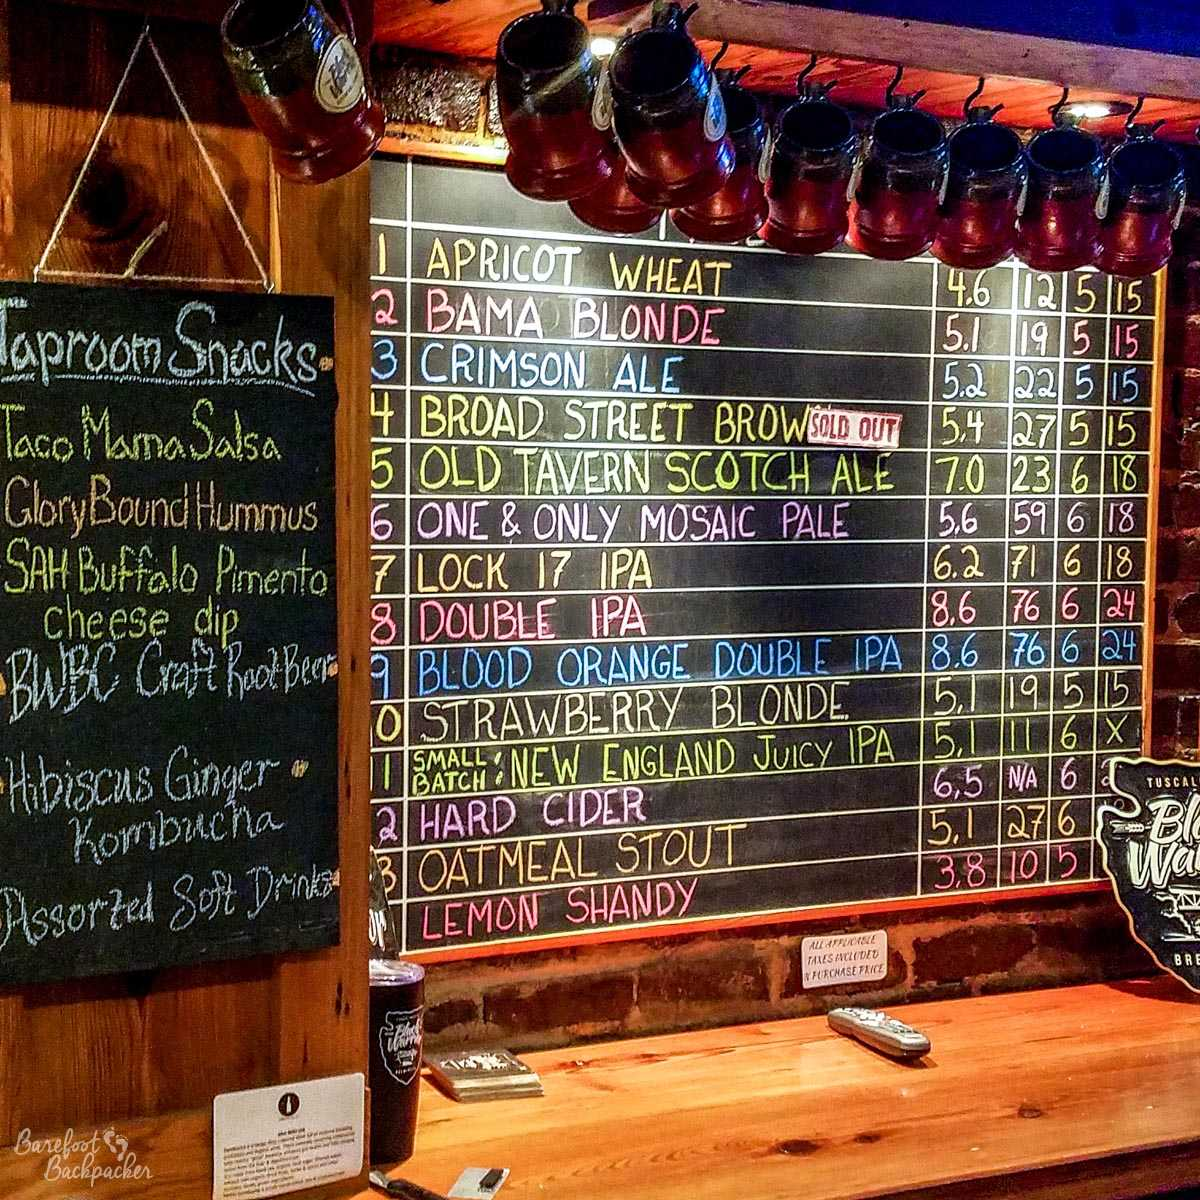 List of beers at Black Warrior Brewery, Tuscaloosa AL